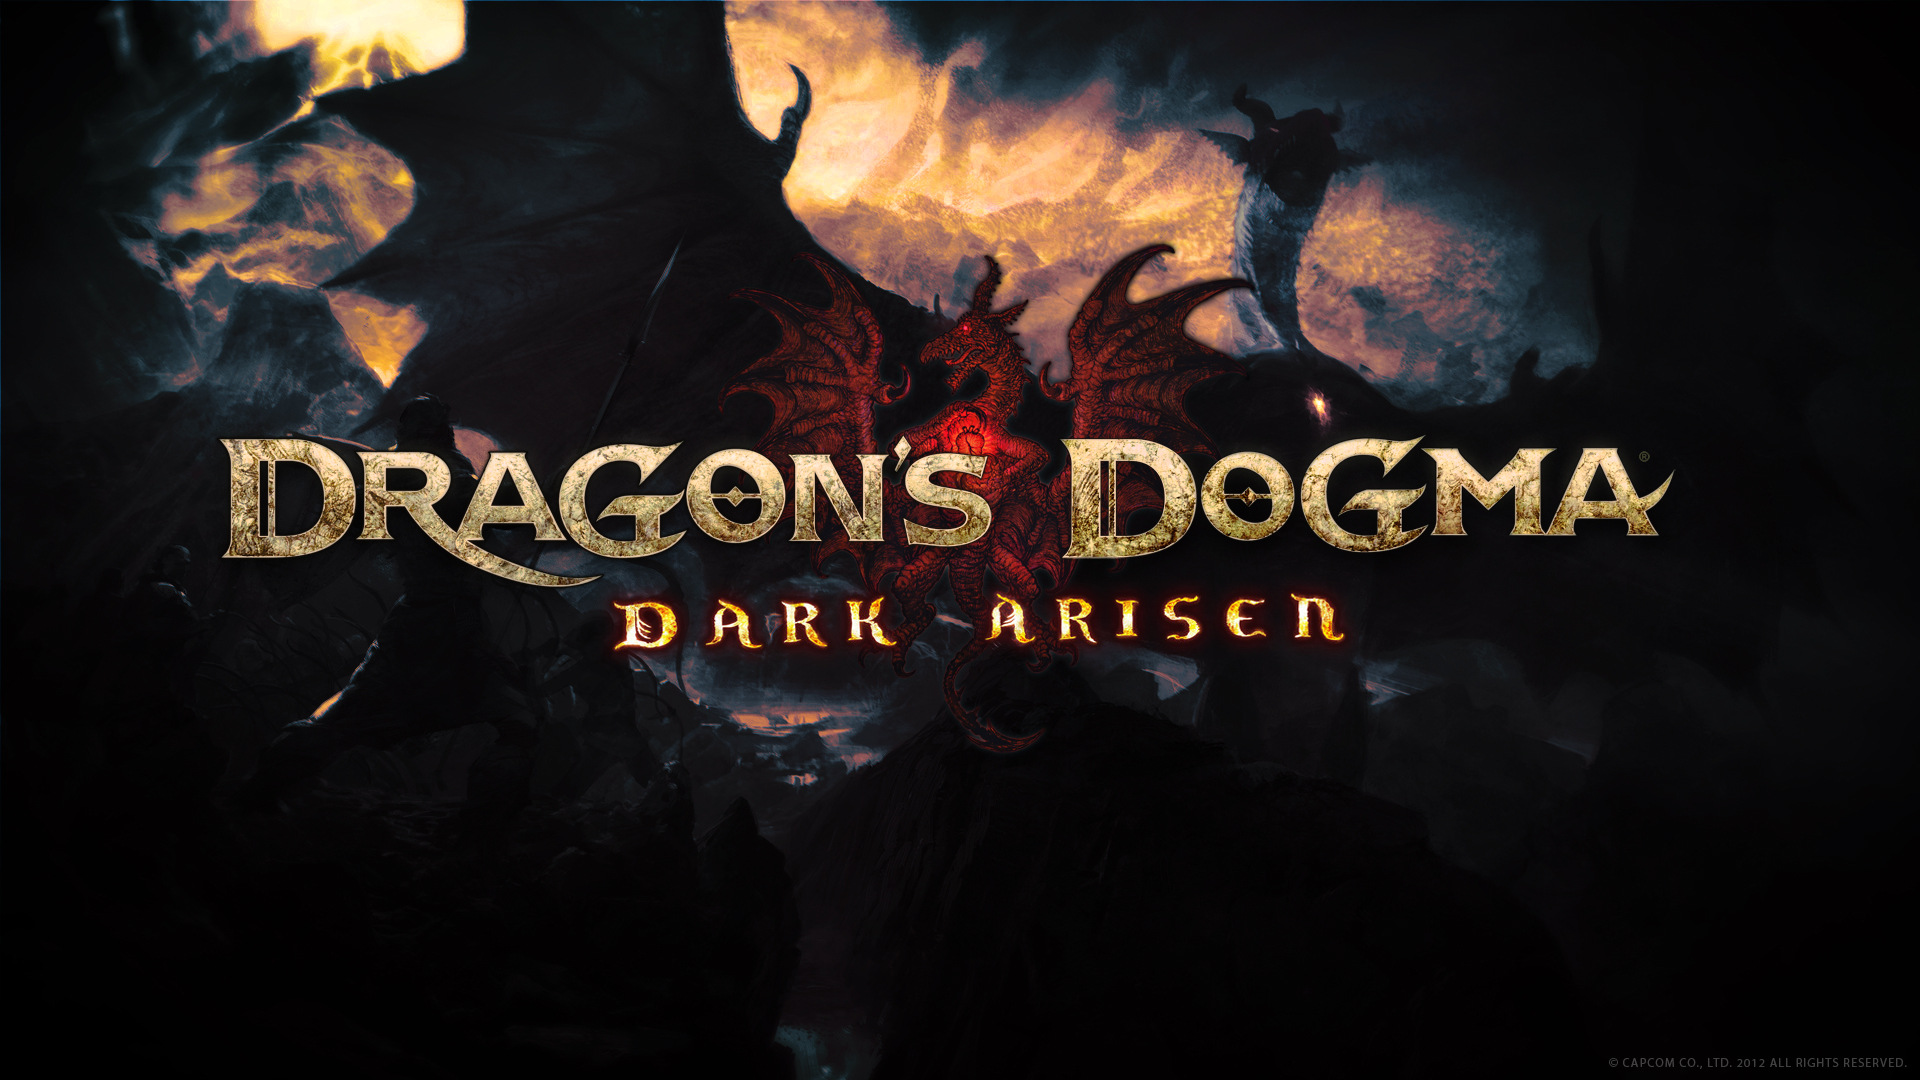 dragon__s_dogma__dark_arisen_wallpaper_3_by_christian2506-d5gxffm+1.jpg